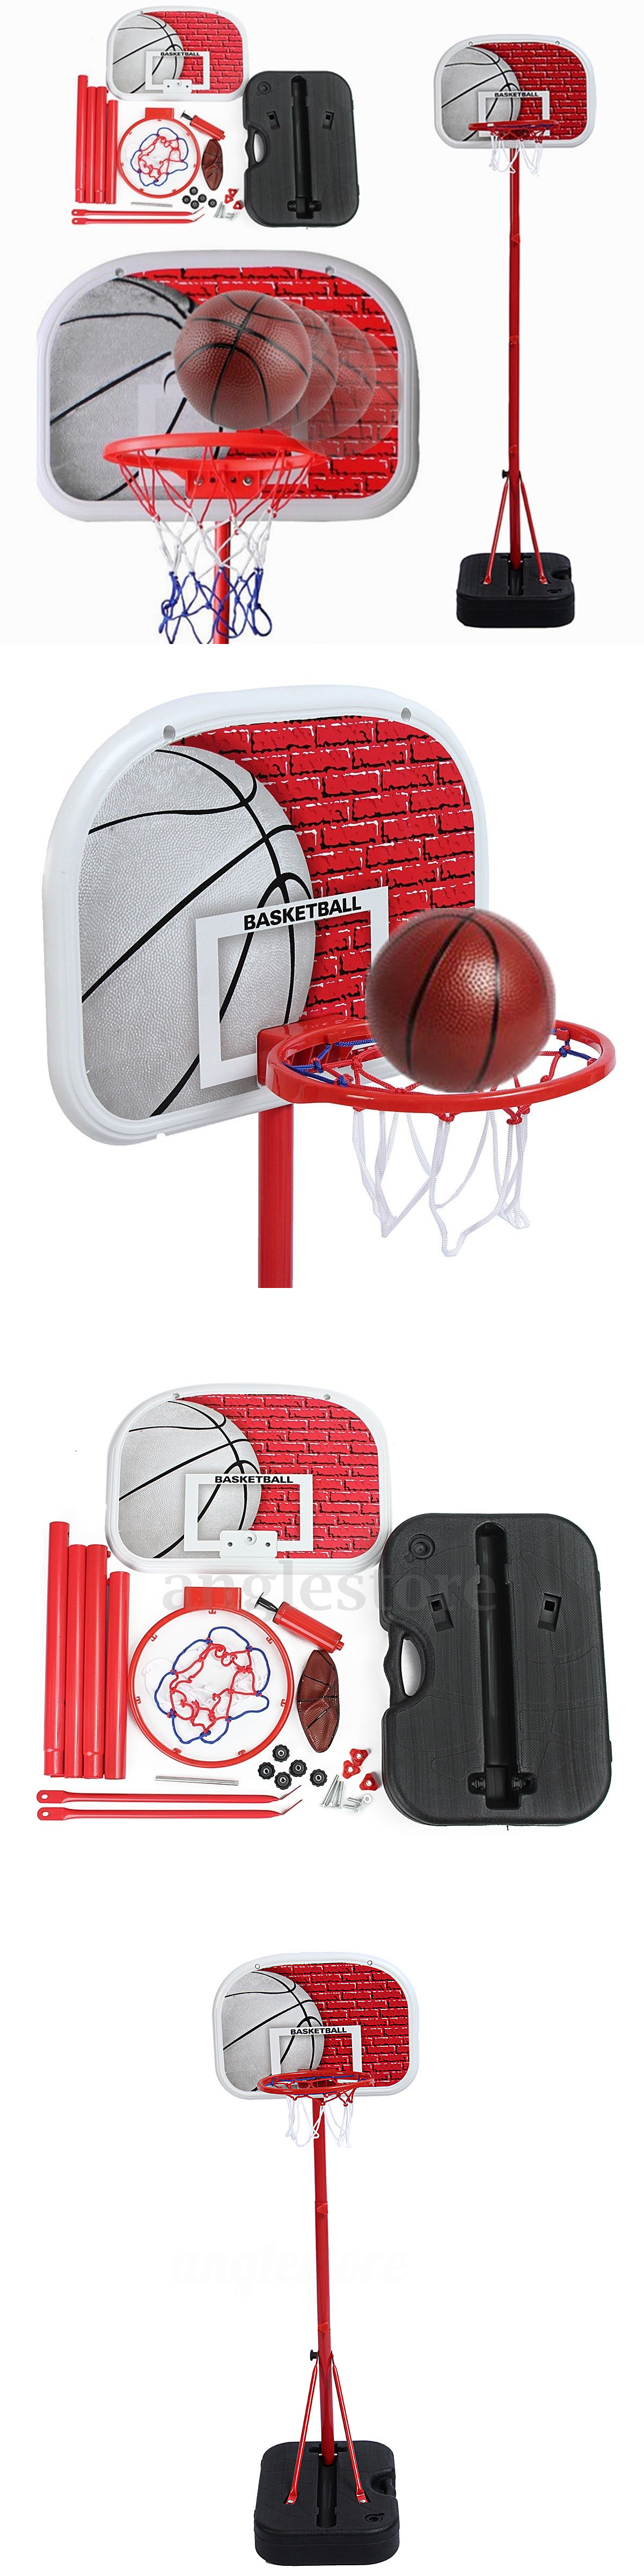 backboard systems 21196 basketball hoop system stand kid indoor